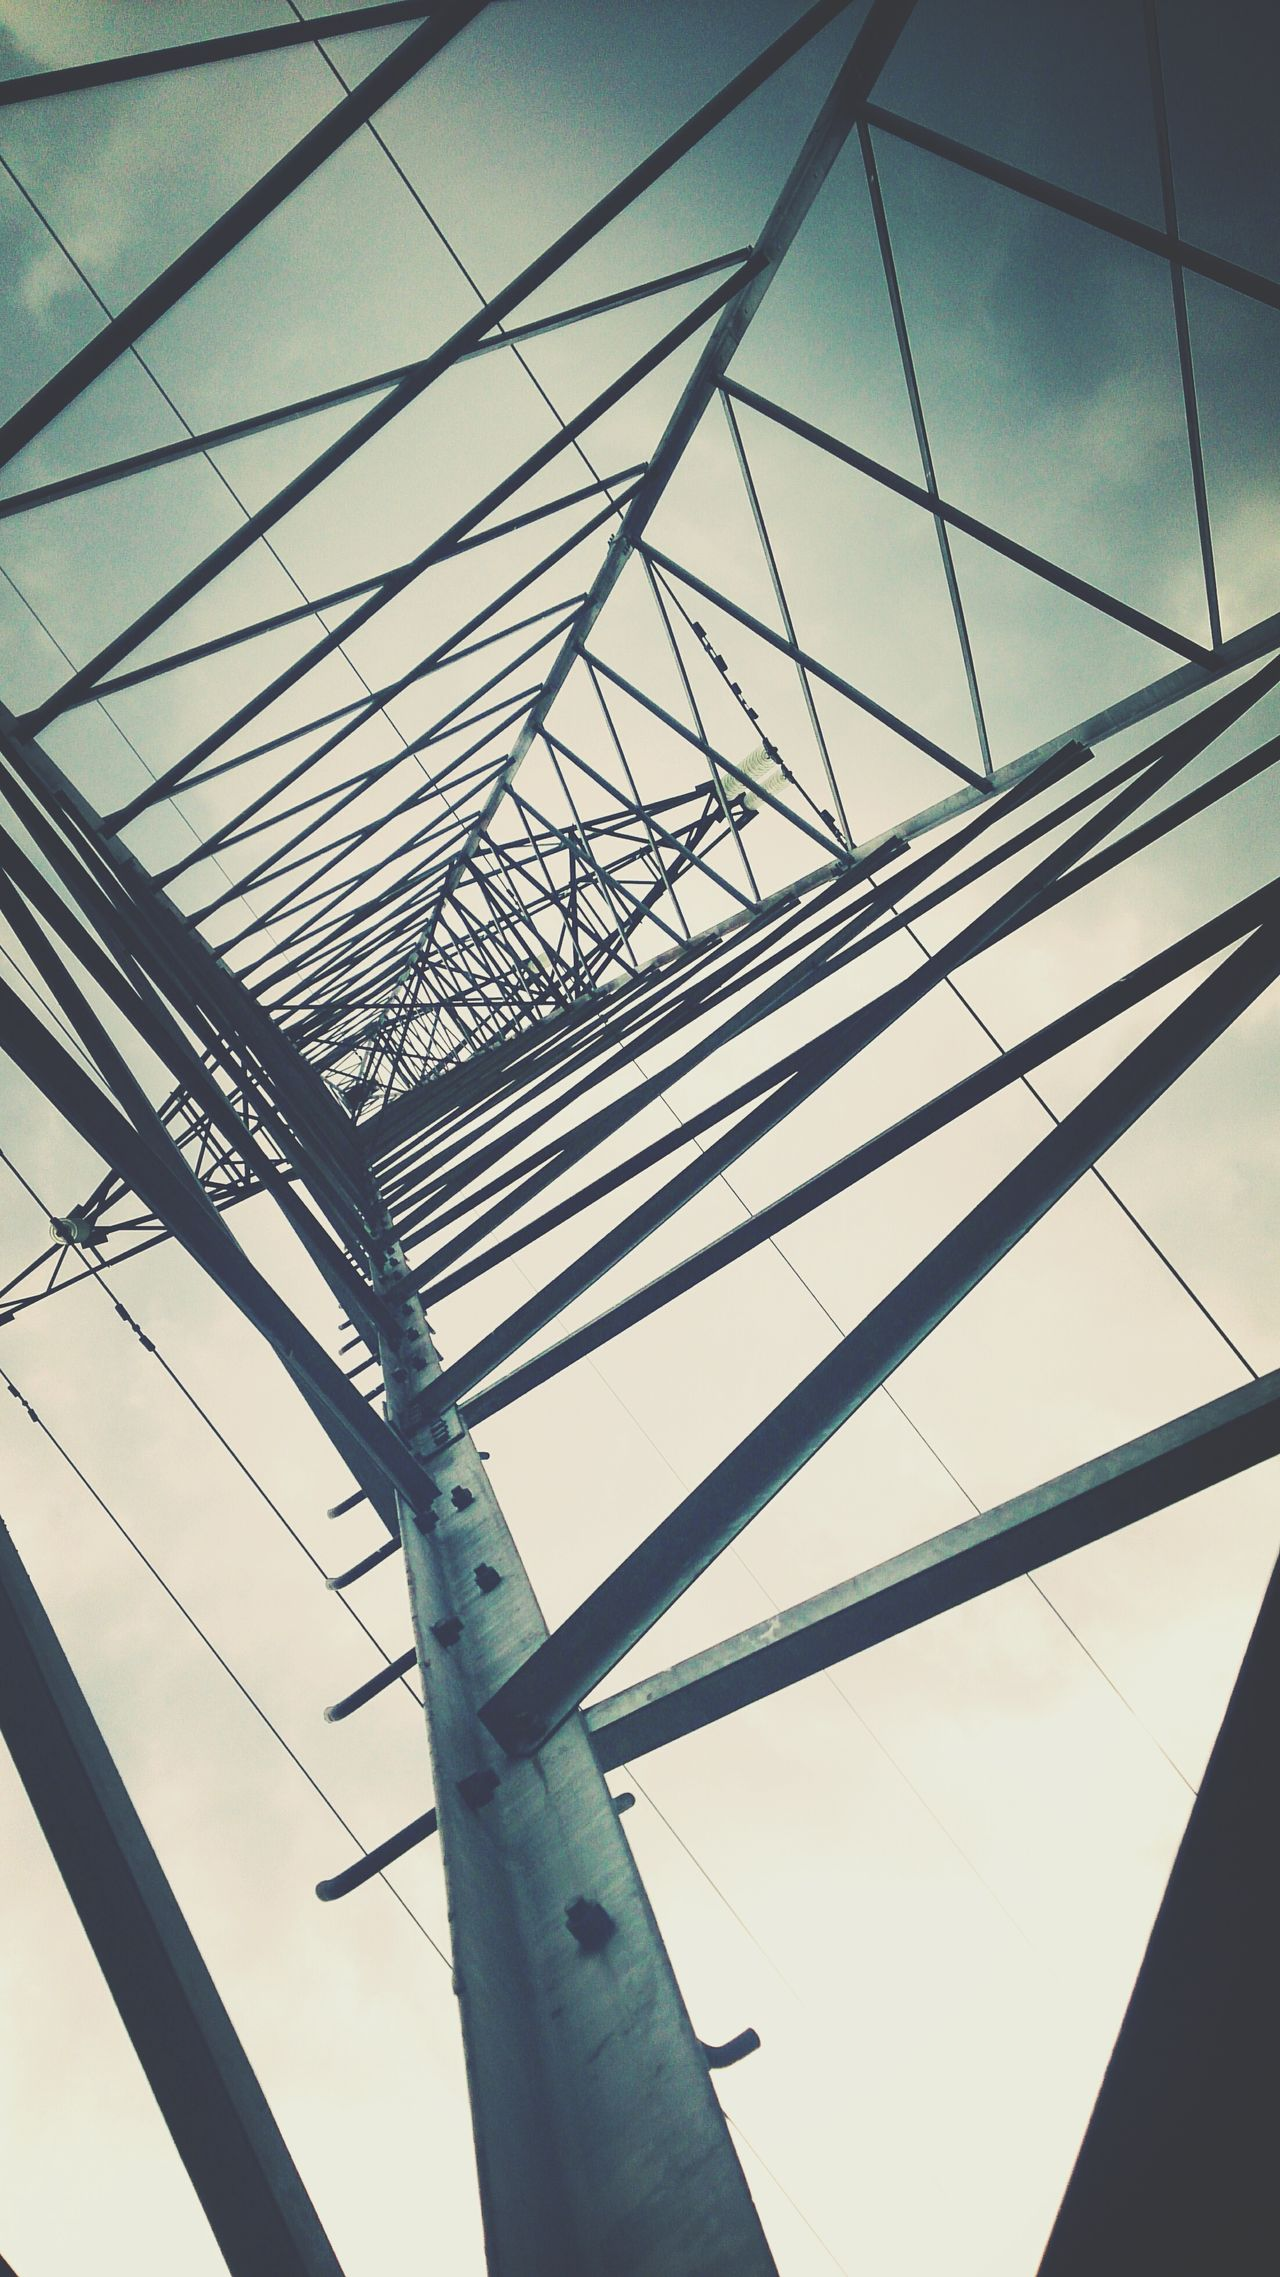 Electric tower No People Electricity  Low Angle View Power Supply Connection Cable Technology Sky Outdoors Day Close-up Building Exterior Ruins Elecrtonic Electric Tower